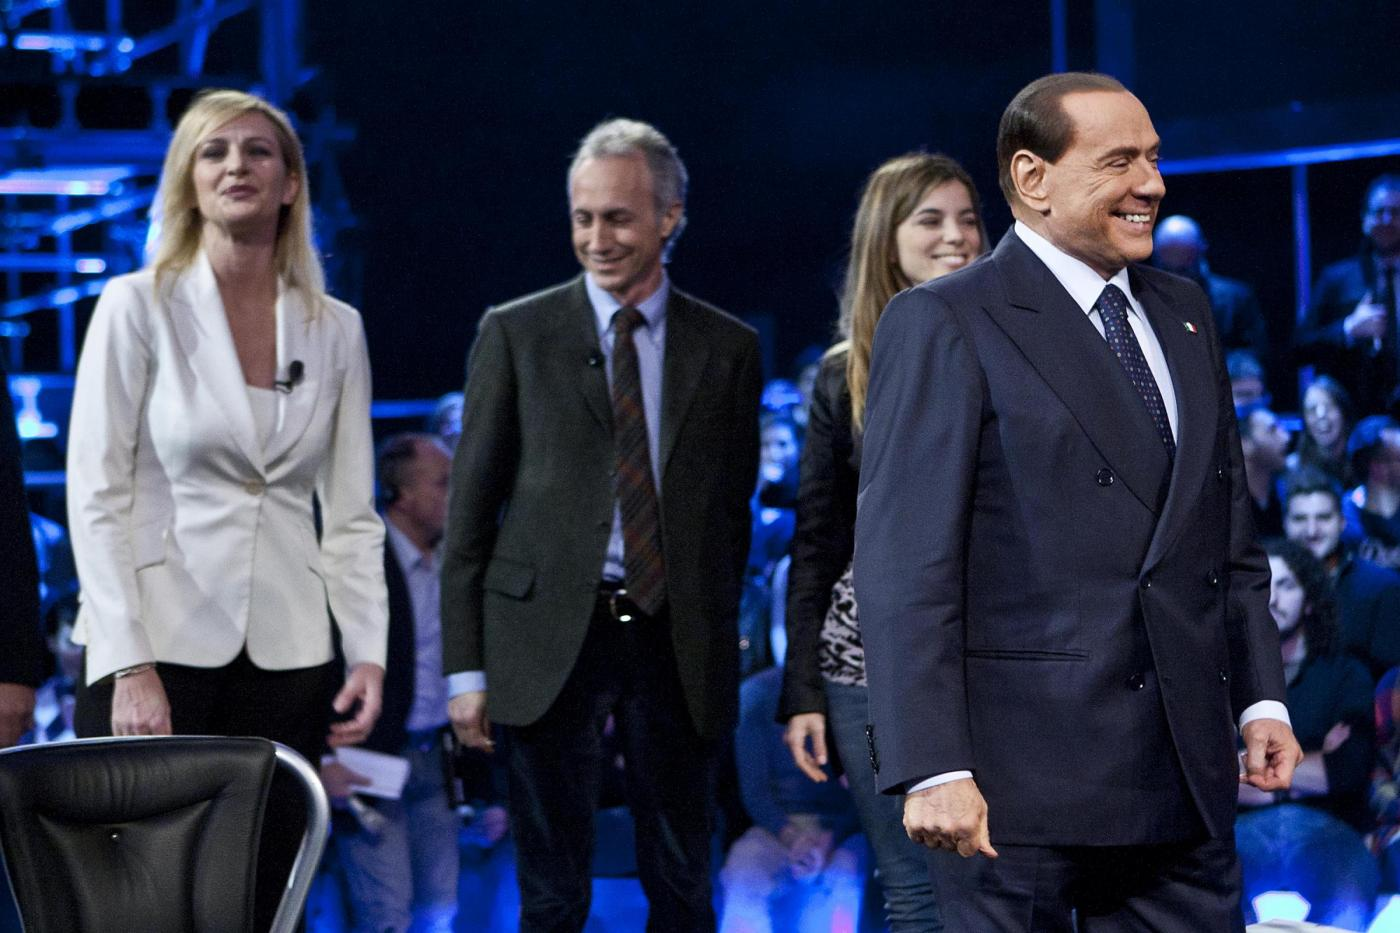 http://www.giornalettismo.com/wp-content/uploads/2013/01/11179350_small.jpg